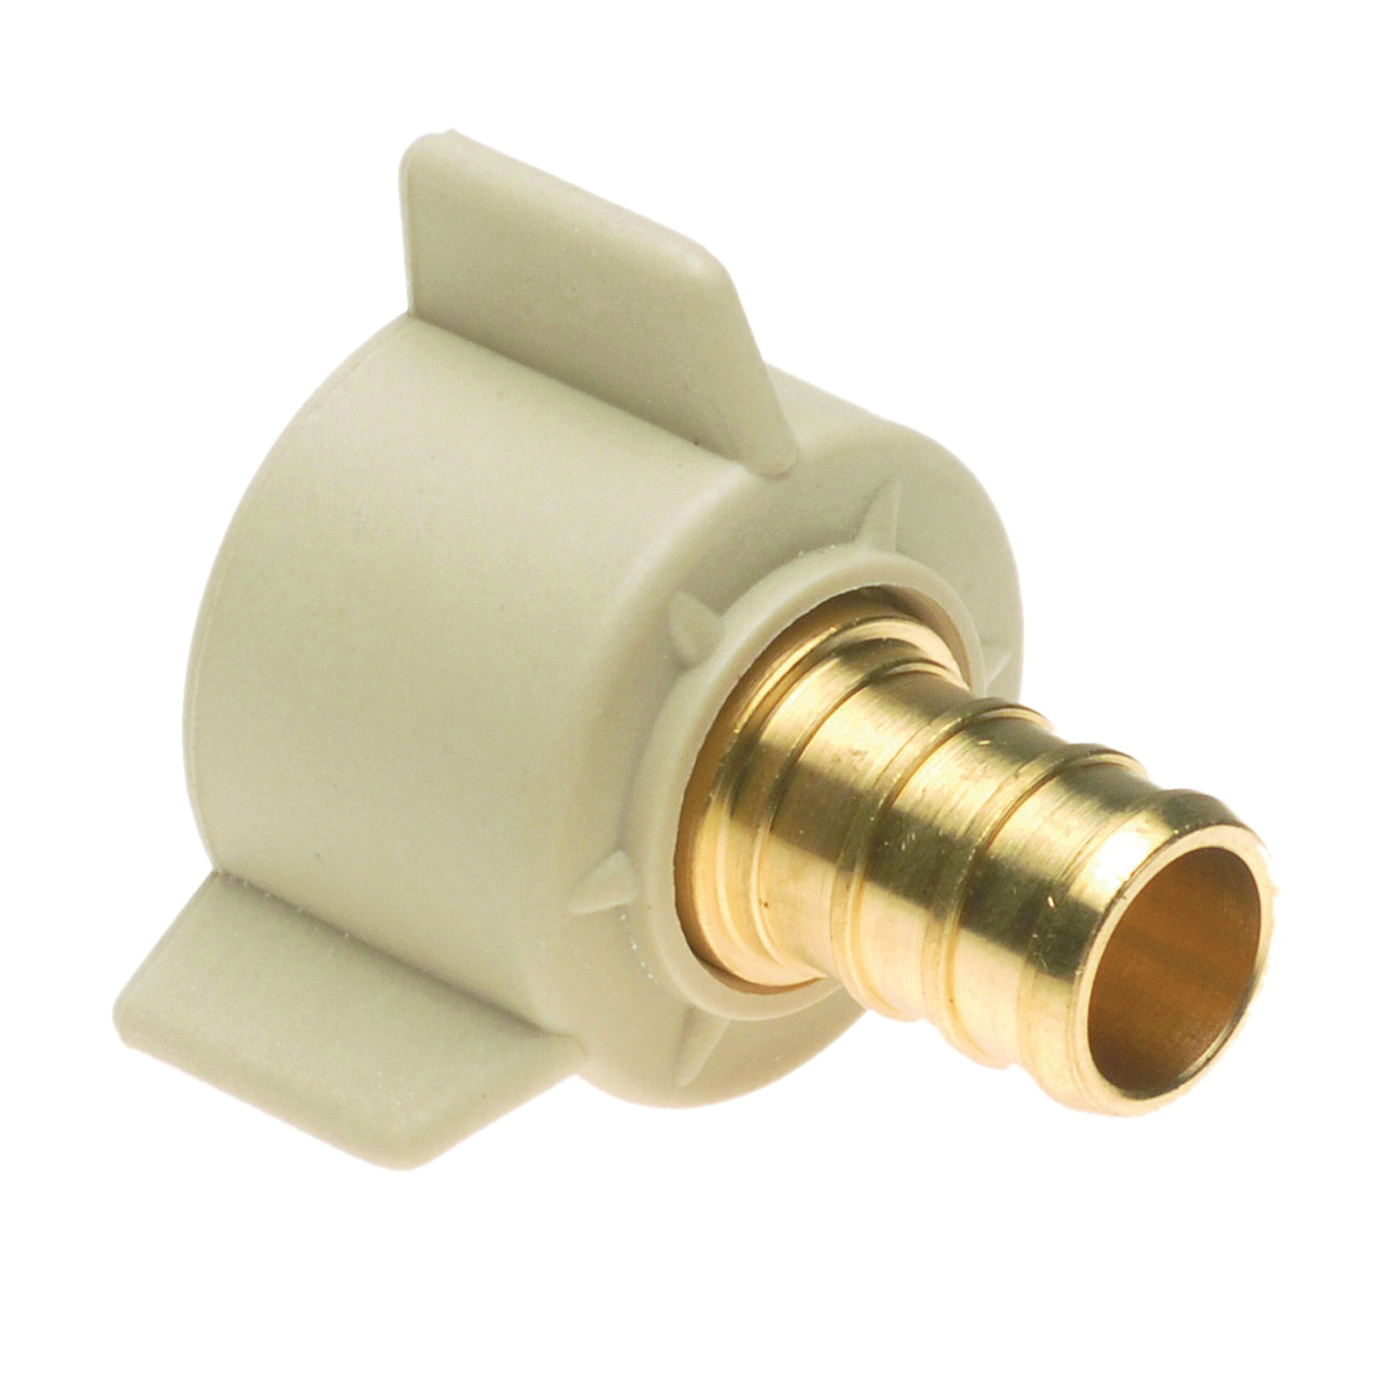 Picture of Apollo APXFB1212S Pipe Adapter, 1/2 in PEX, 1/2 in FPT